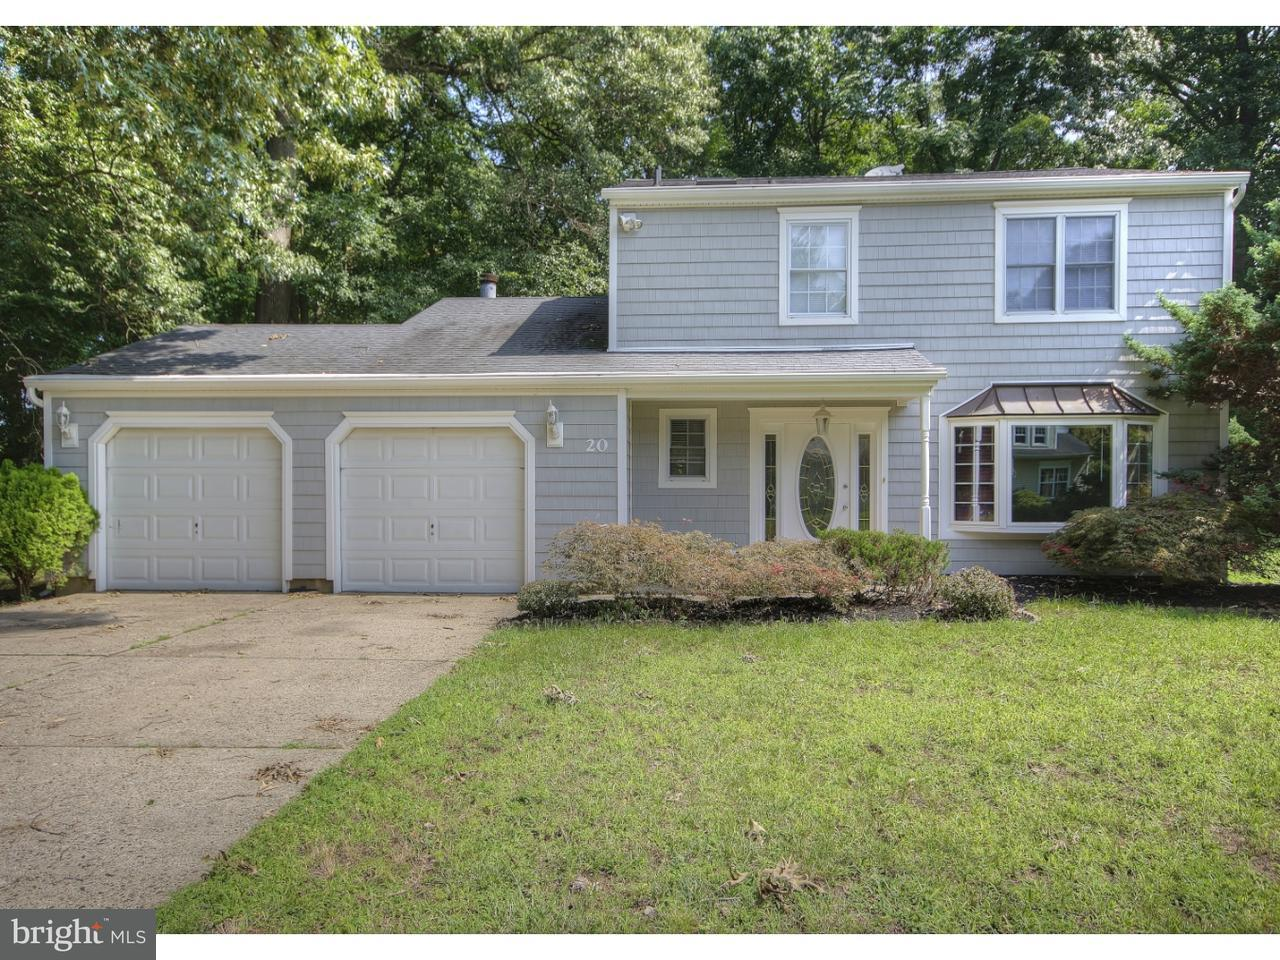 Single Family Home for Sale at 20 TALL TIMBER Lane Florence, New Jersey 08016 United States